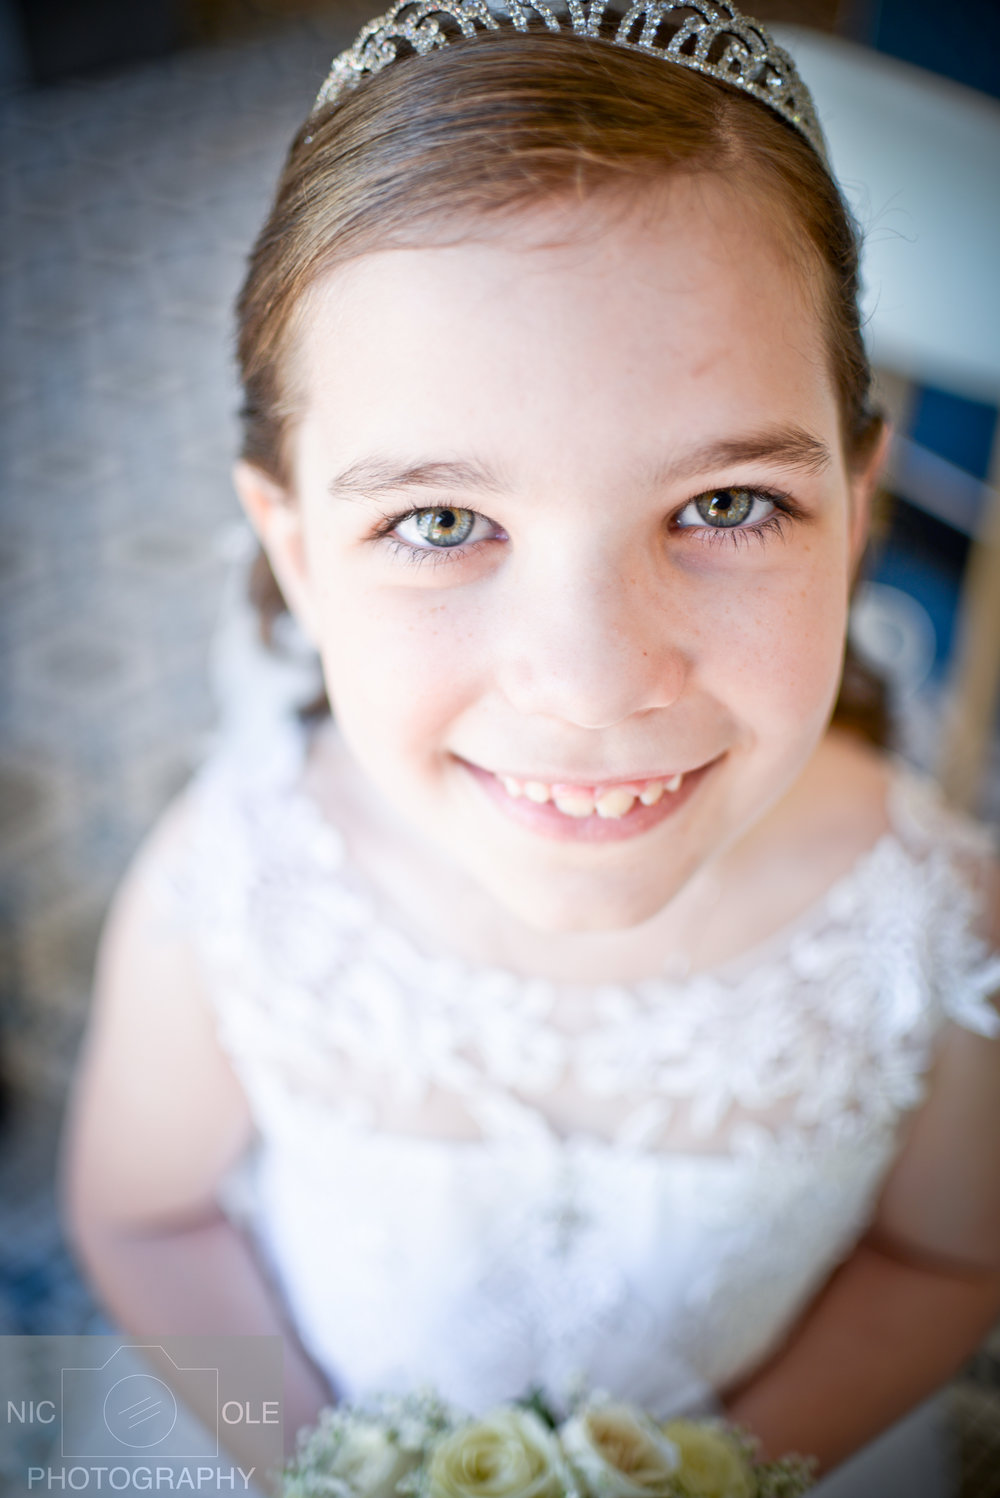 Ava's Communion 2017-NIC-OLE Photography-15.jpg